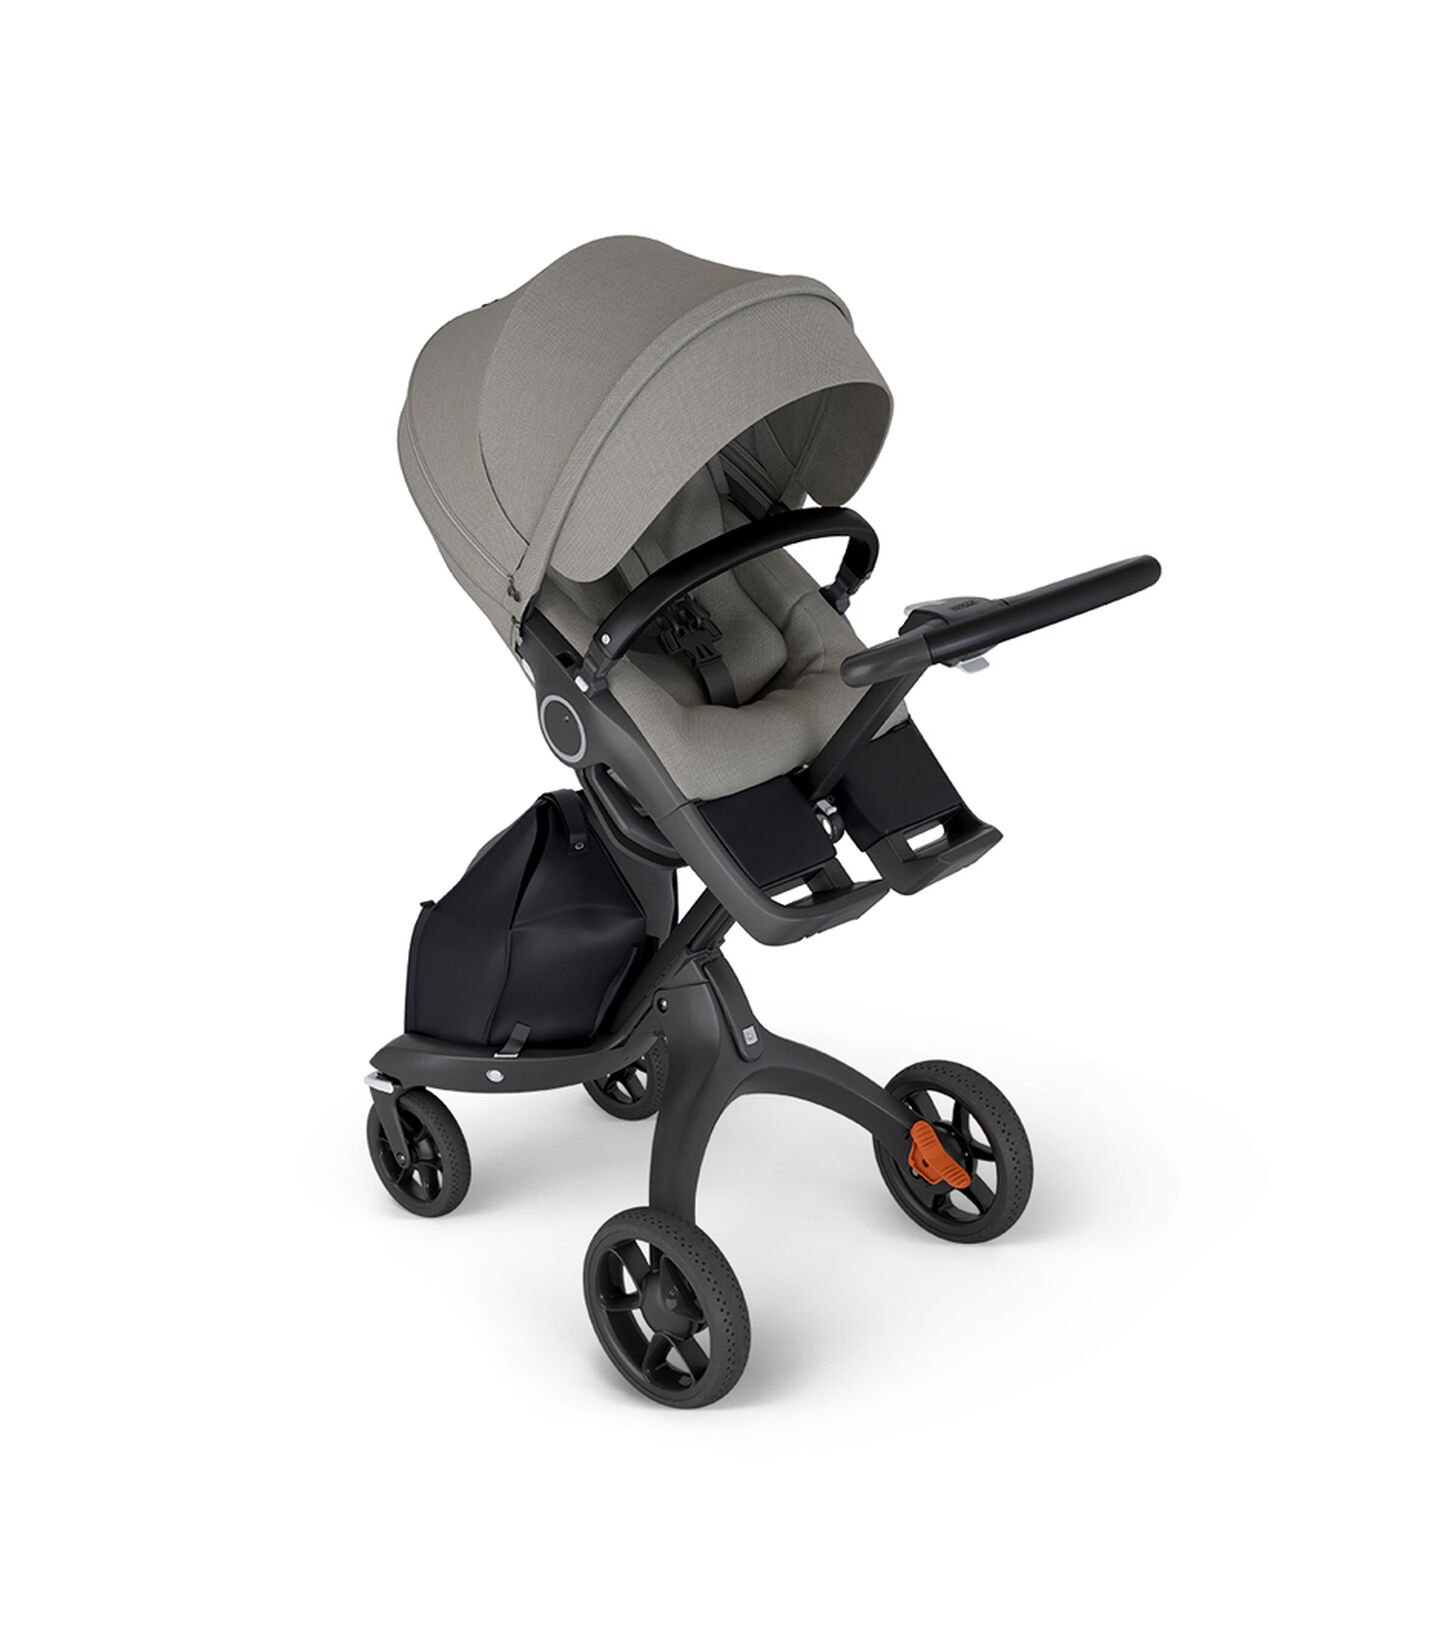 Stokke® Xplory® with Black Chassis and Leatherette Black handle. Stokke® Stroller Seat Brushed Grey in angled view.